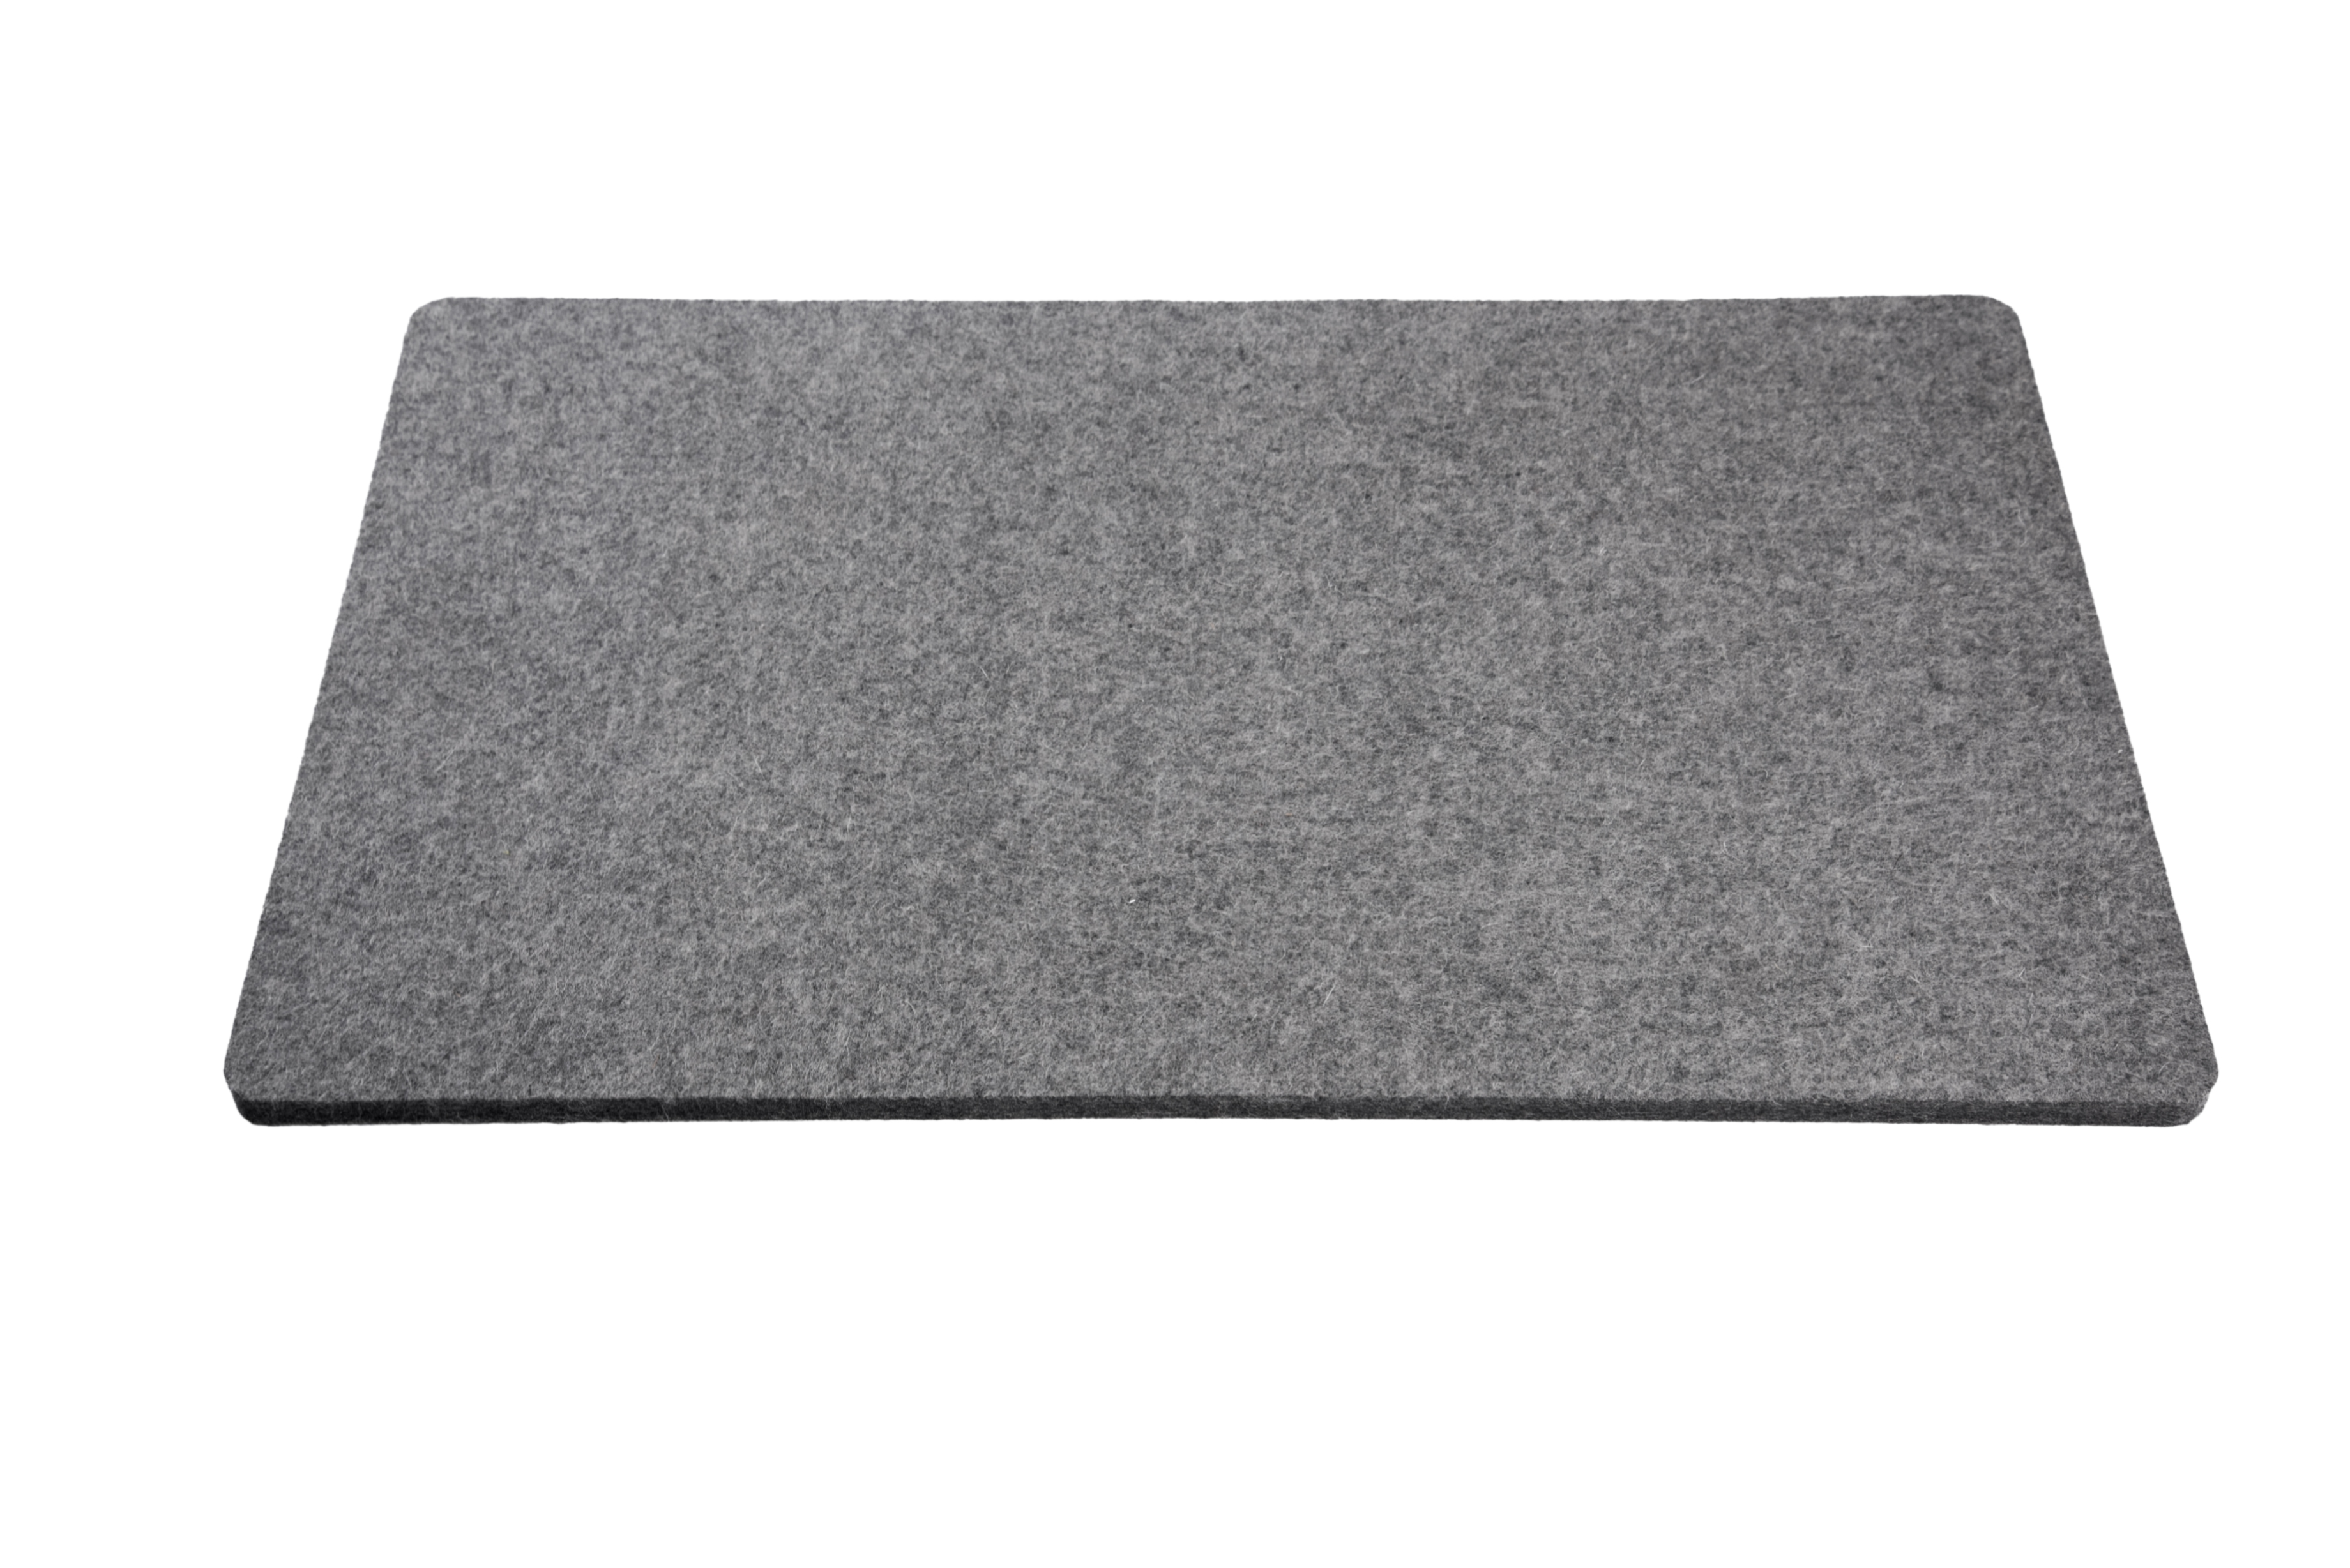 100% Wool Customized Size 1/2 inch thick Wool Ironing Board